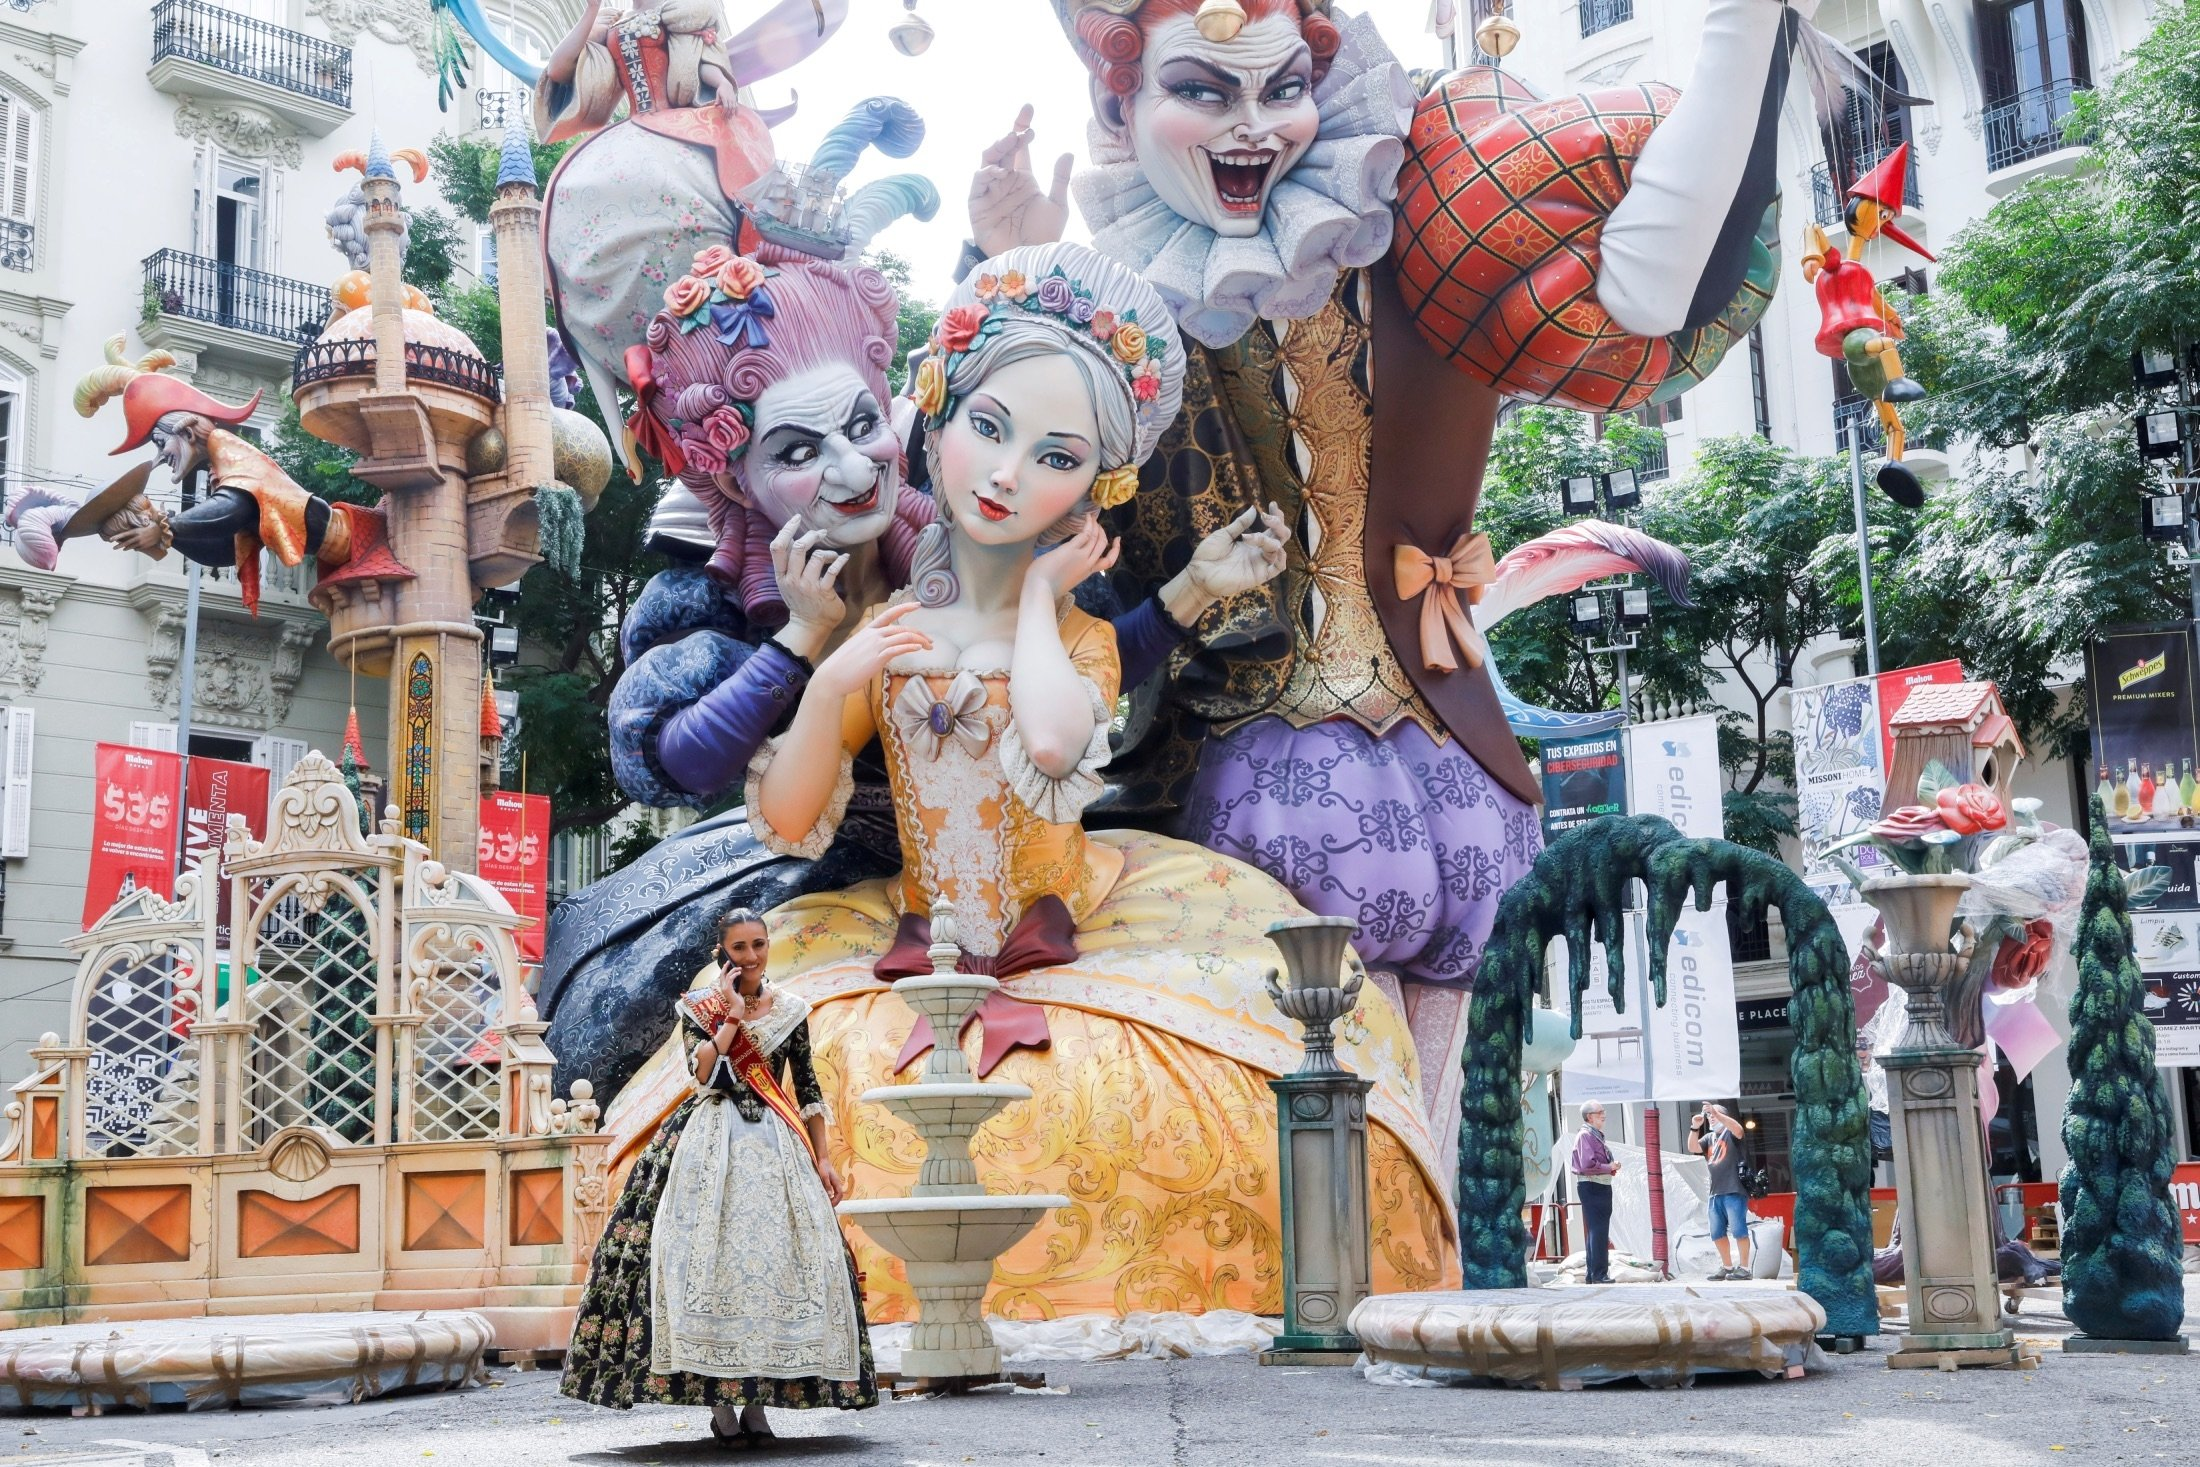 Fallas festival kicks off after its suspension due to the COVID-19 pandemic in Valencia, Spain, Sept. 1, 2021. (Reuters Photo)